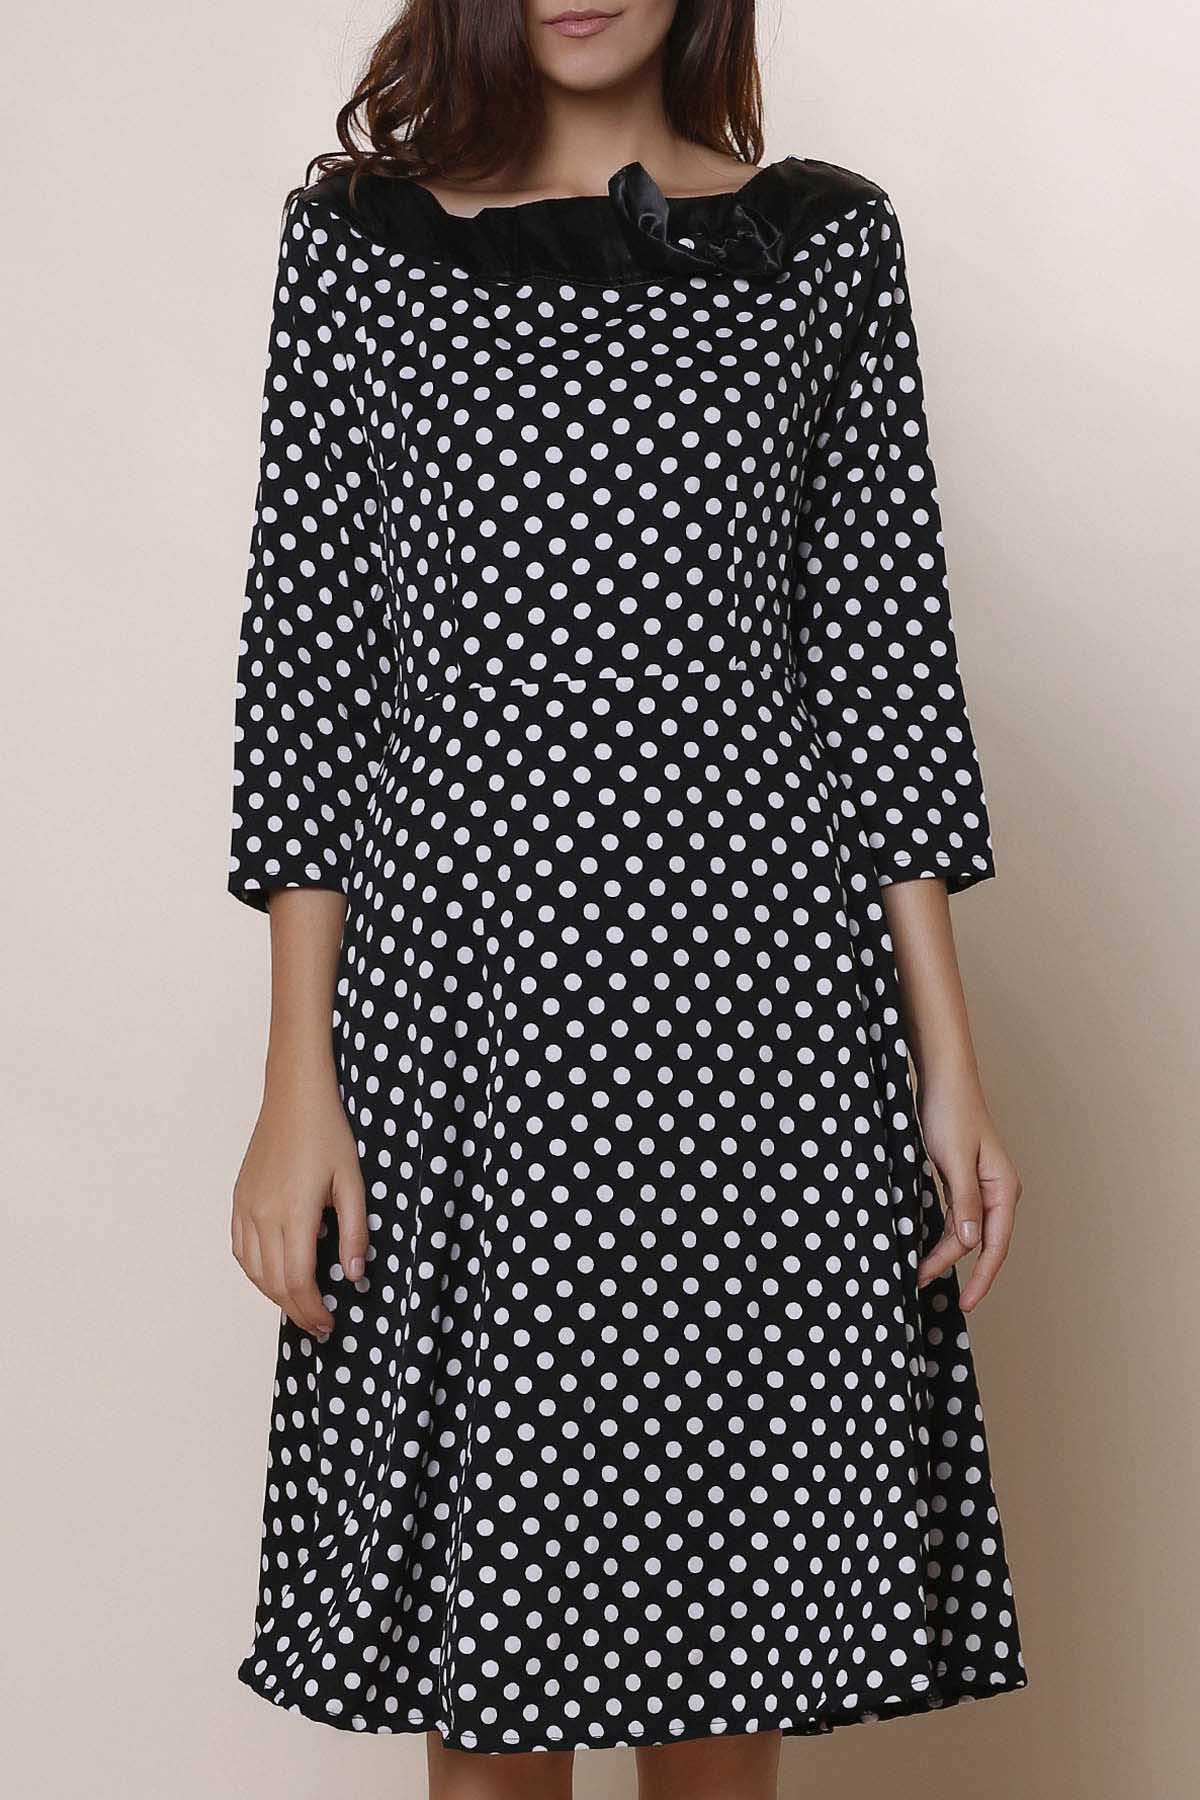 Vintage Polka Dot Print Slash Neck Bowknot Design 3/4 Sleeve Dress For Women - BLACK XL